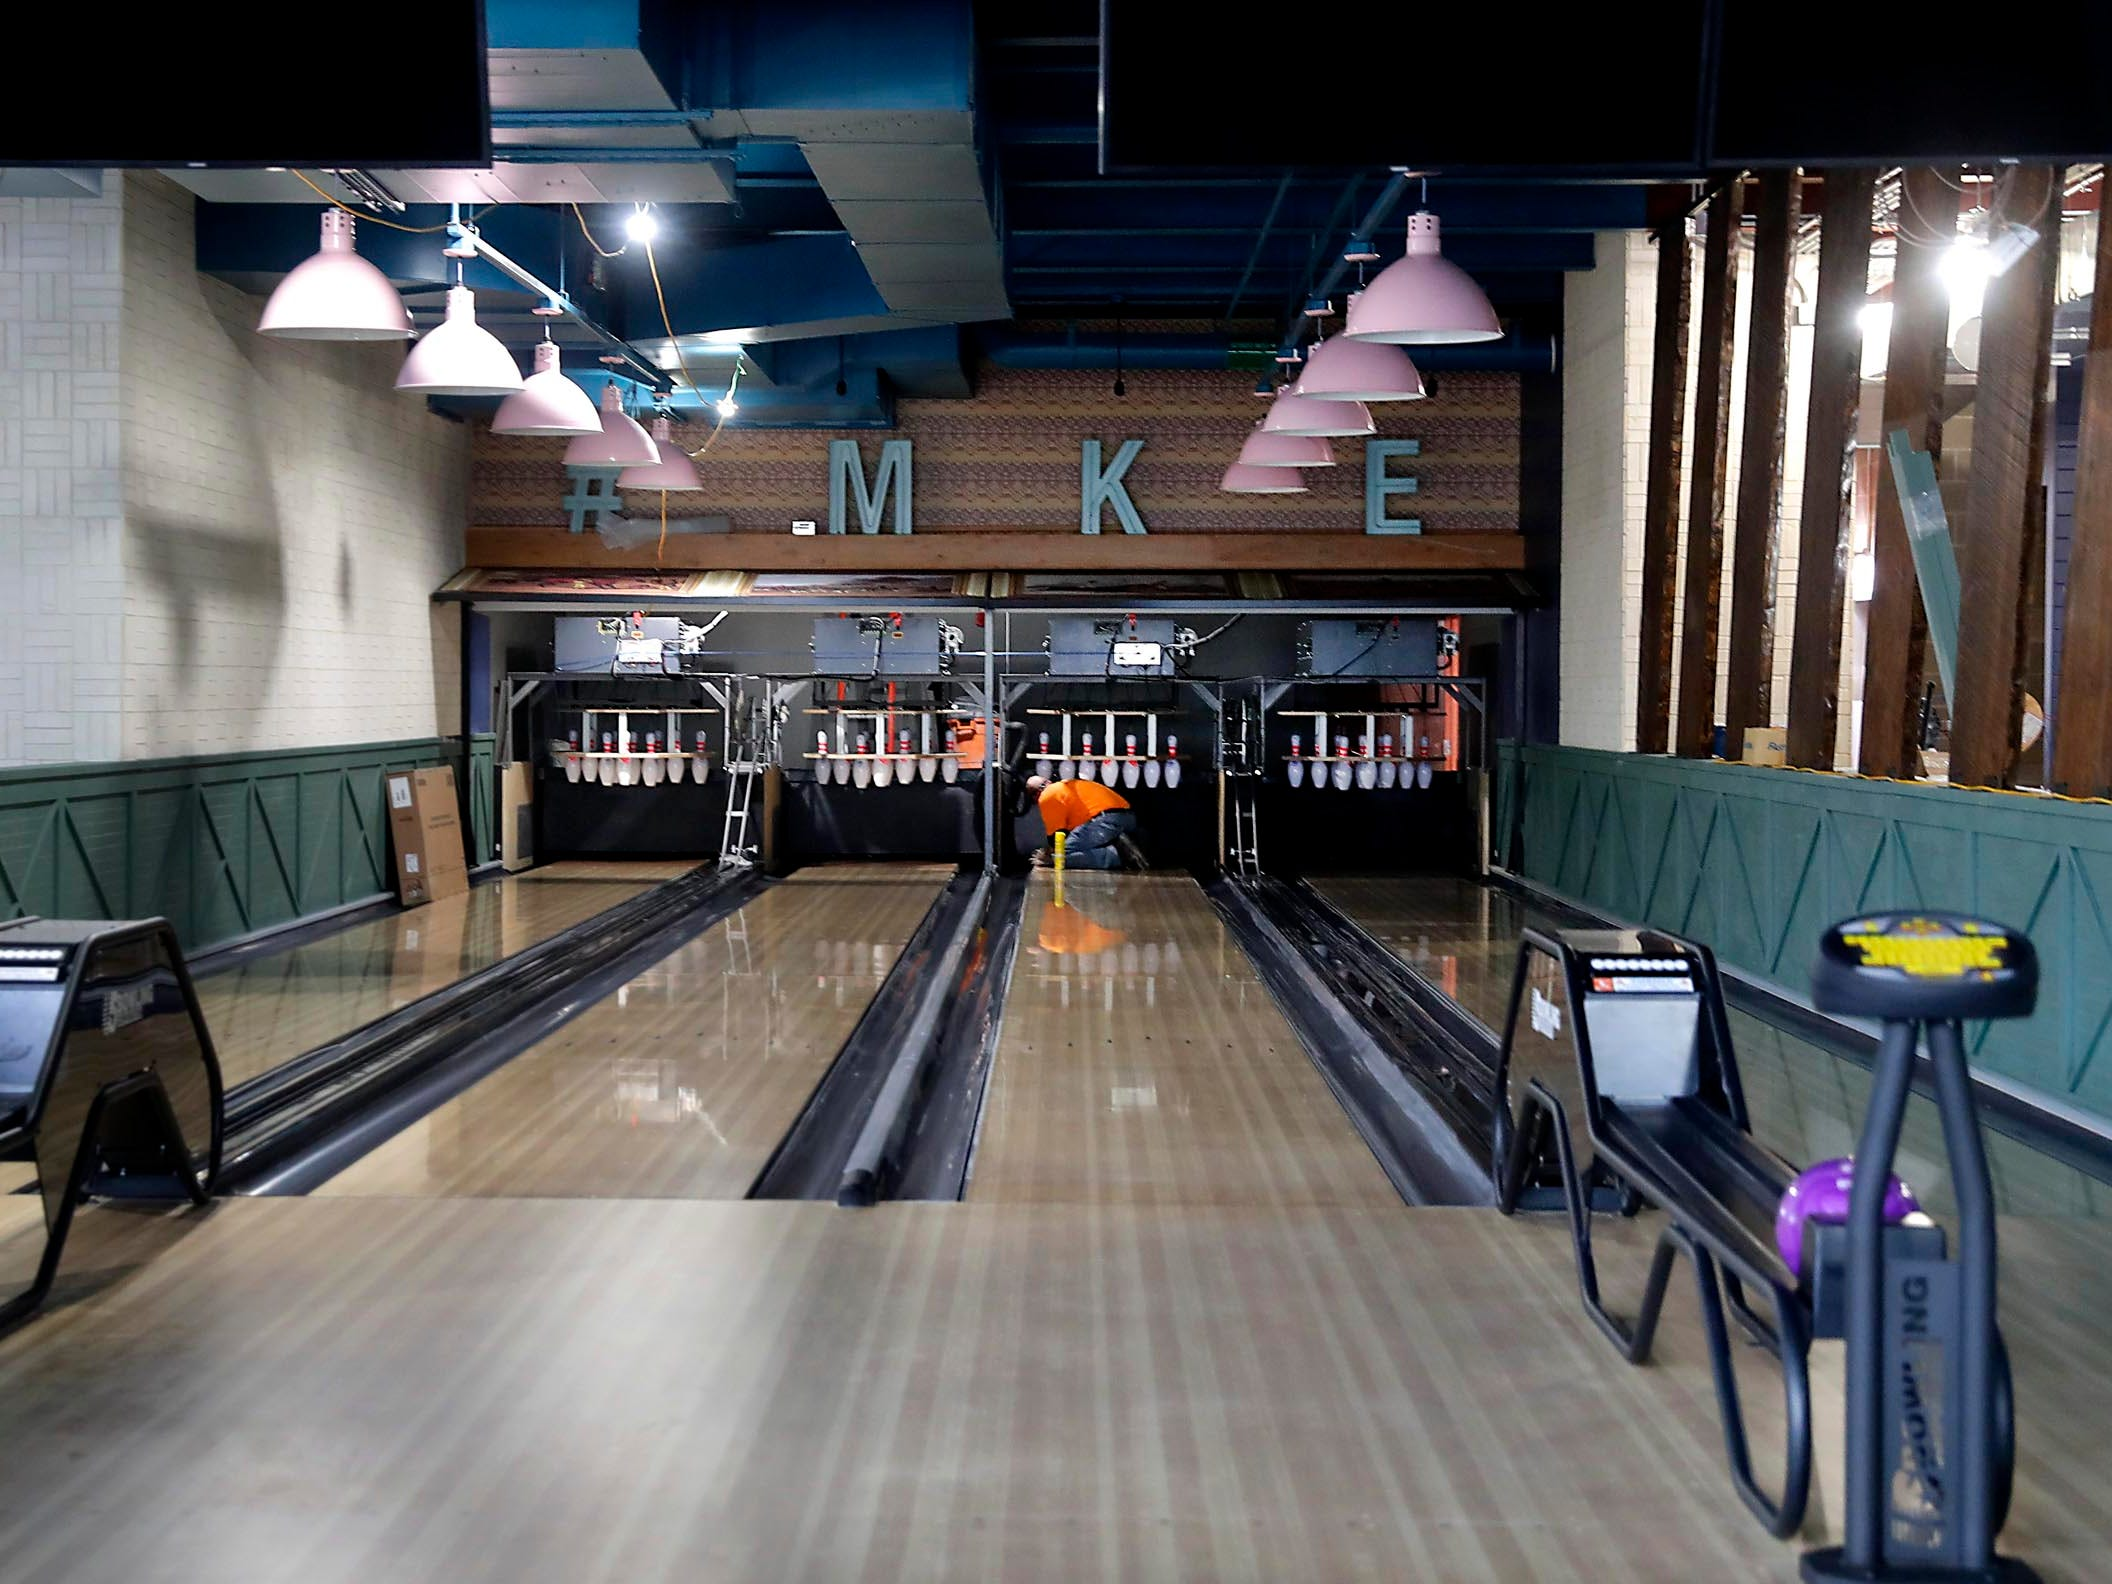 A worker works on a bowling lane Monday at Punch Bowl Social.